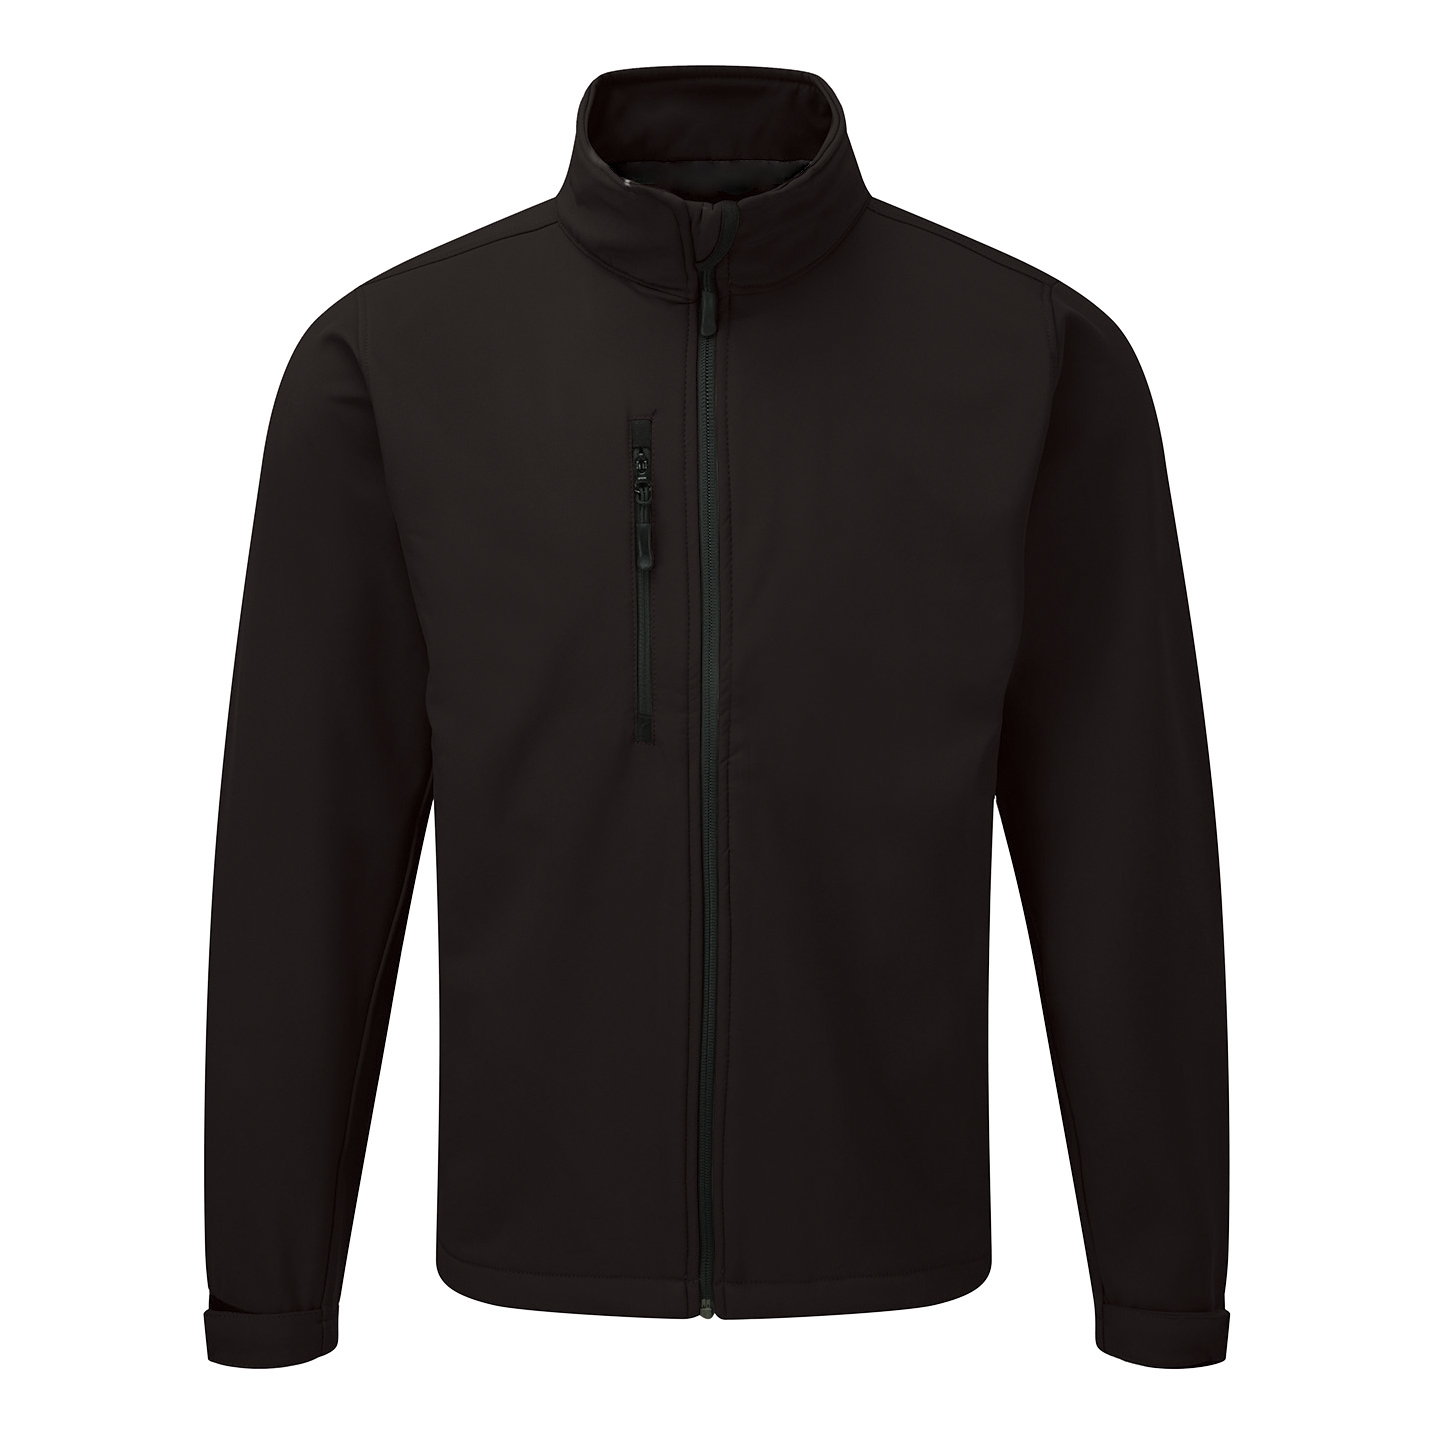 Jacket Soft Shell Water Resistant Breathable 320gsm XS Black